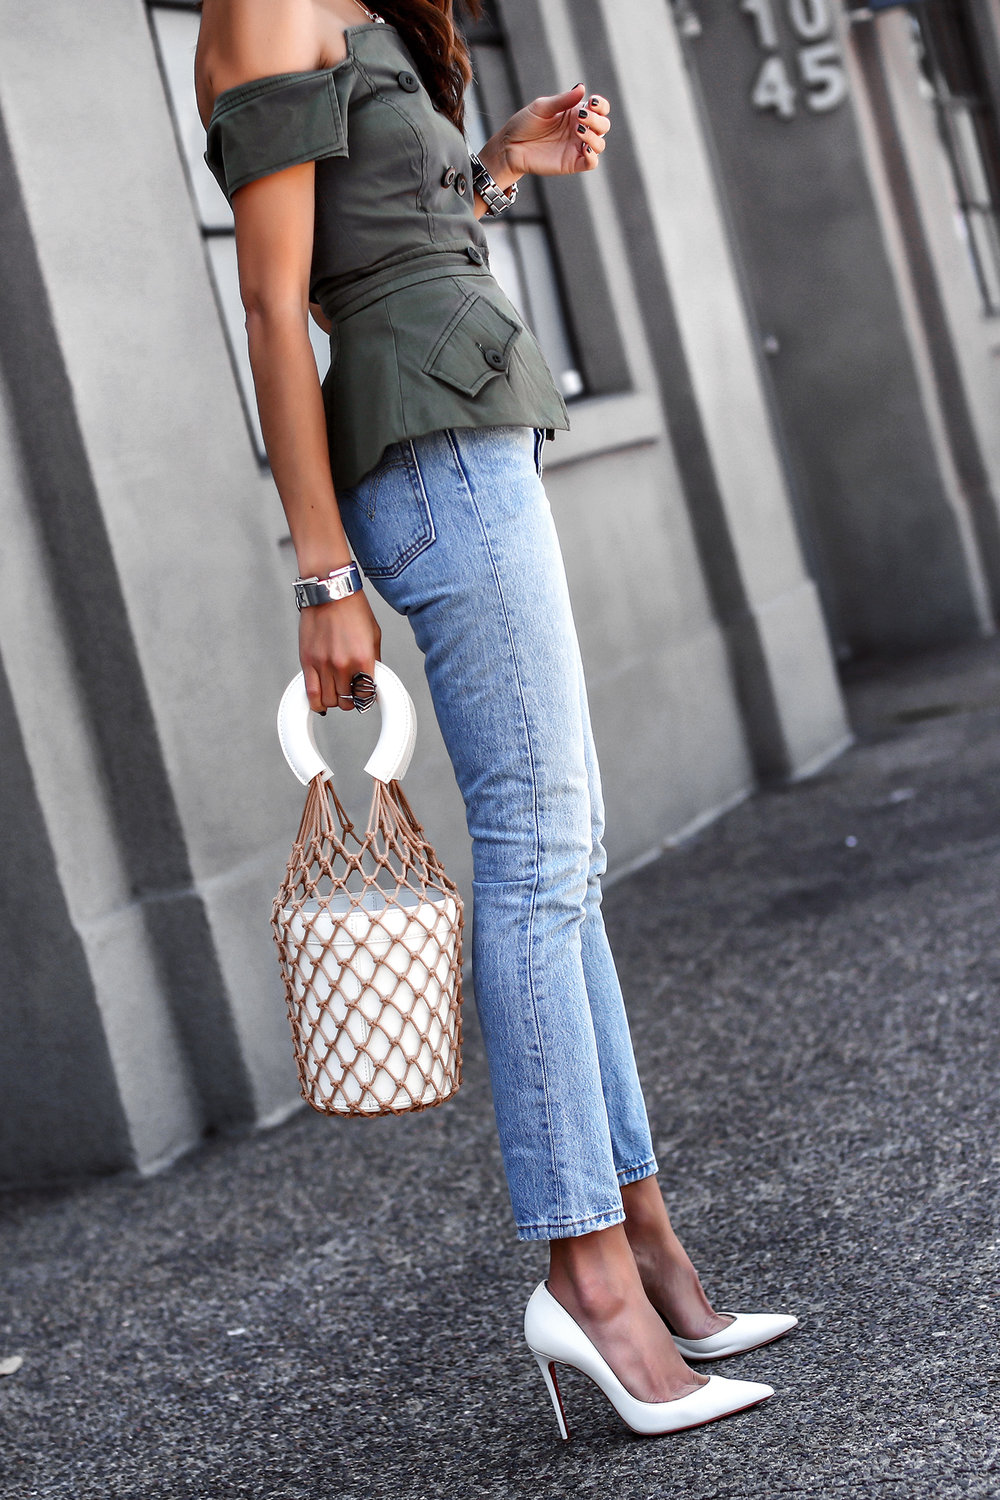 Marissa Webb Vest Levis Jeans Staud Bucket Bag White Christian Louboutin Pumps Spring Trend  Must Haves.jpg